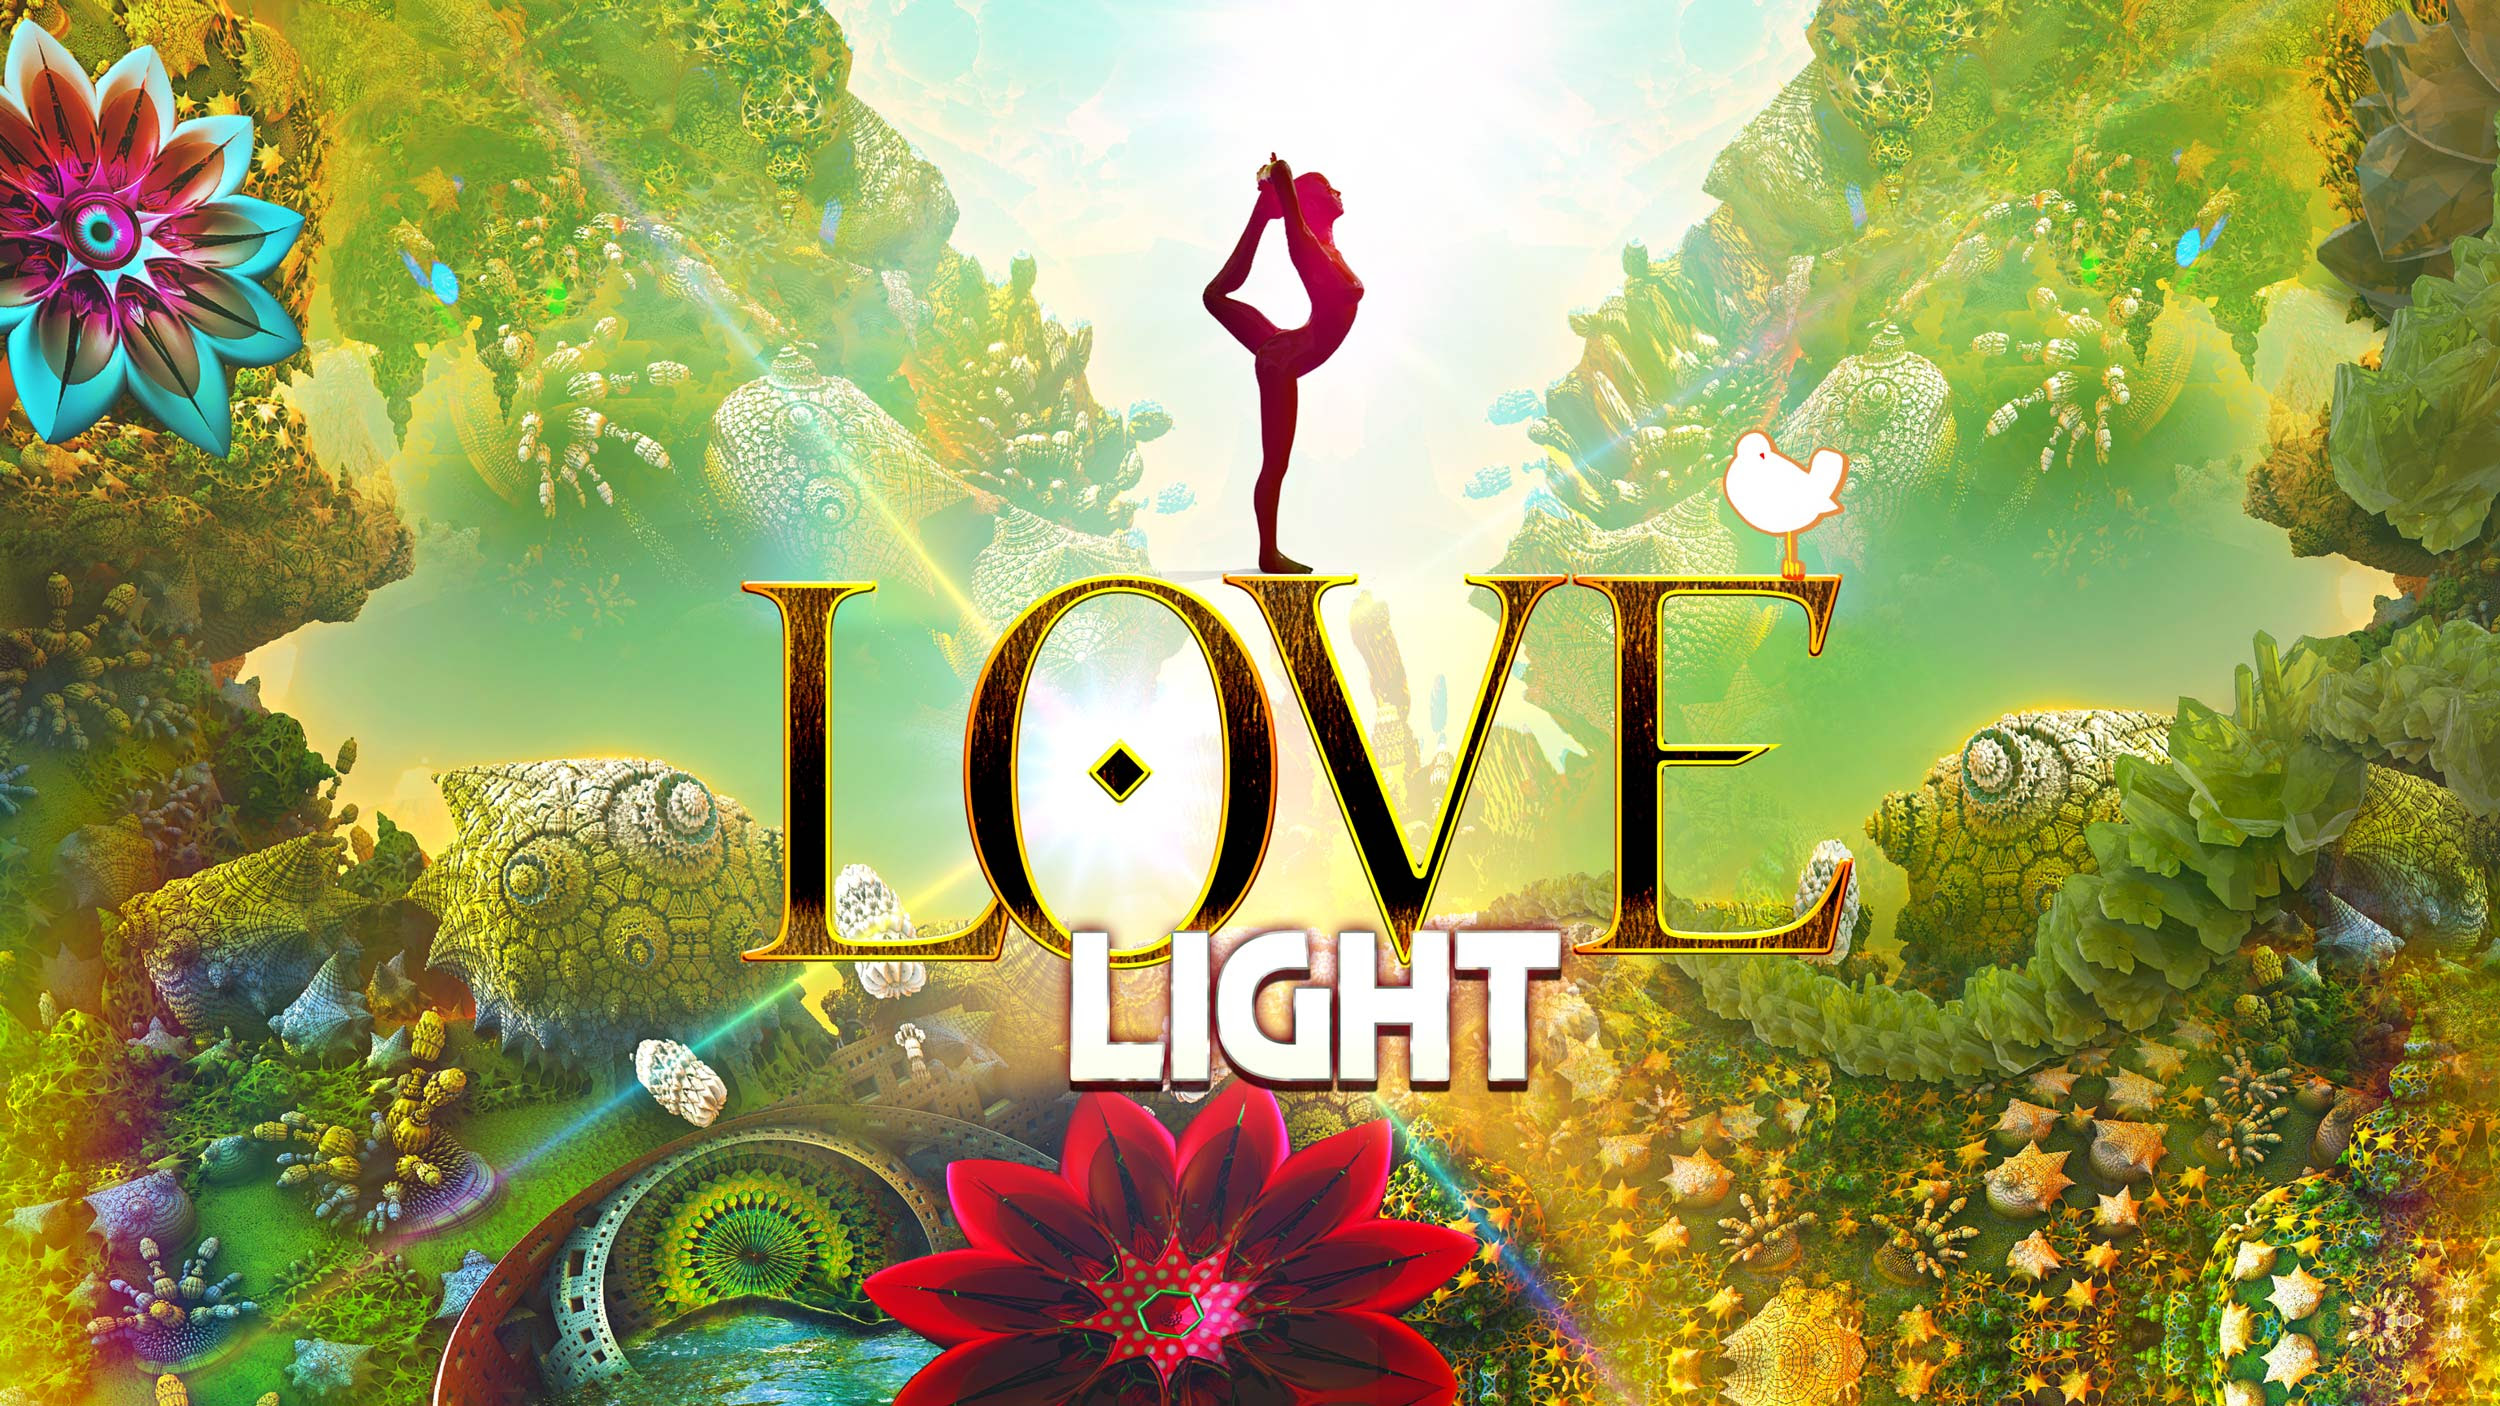 lovelight Yoga Festival